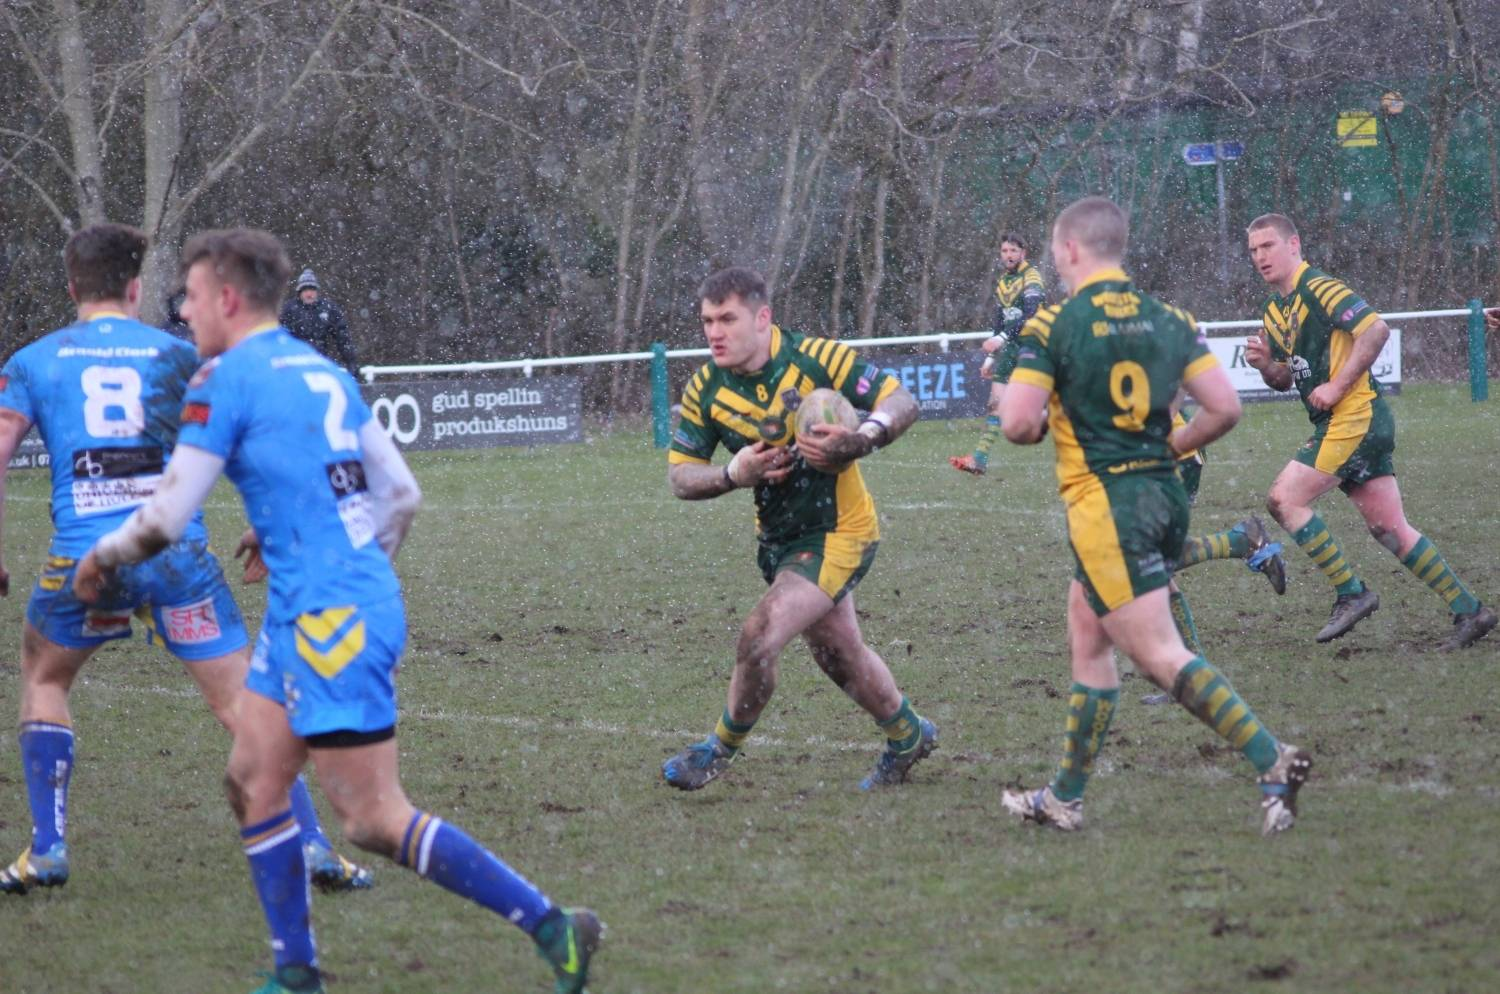 Fieldhouse steps down as Woolston Rovers Head Coach